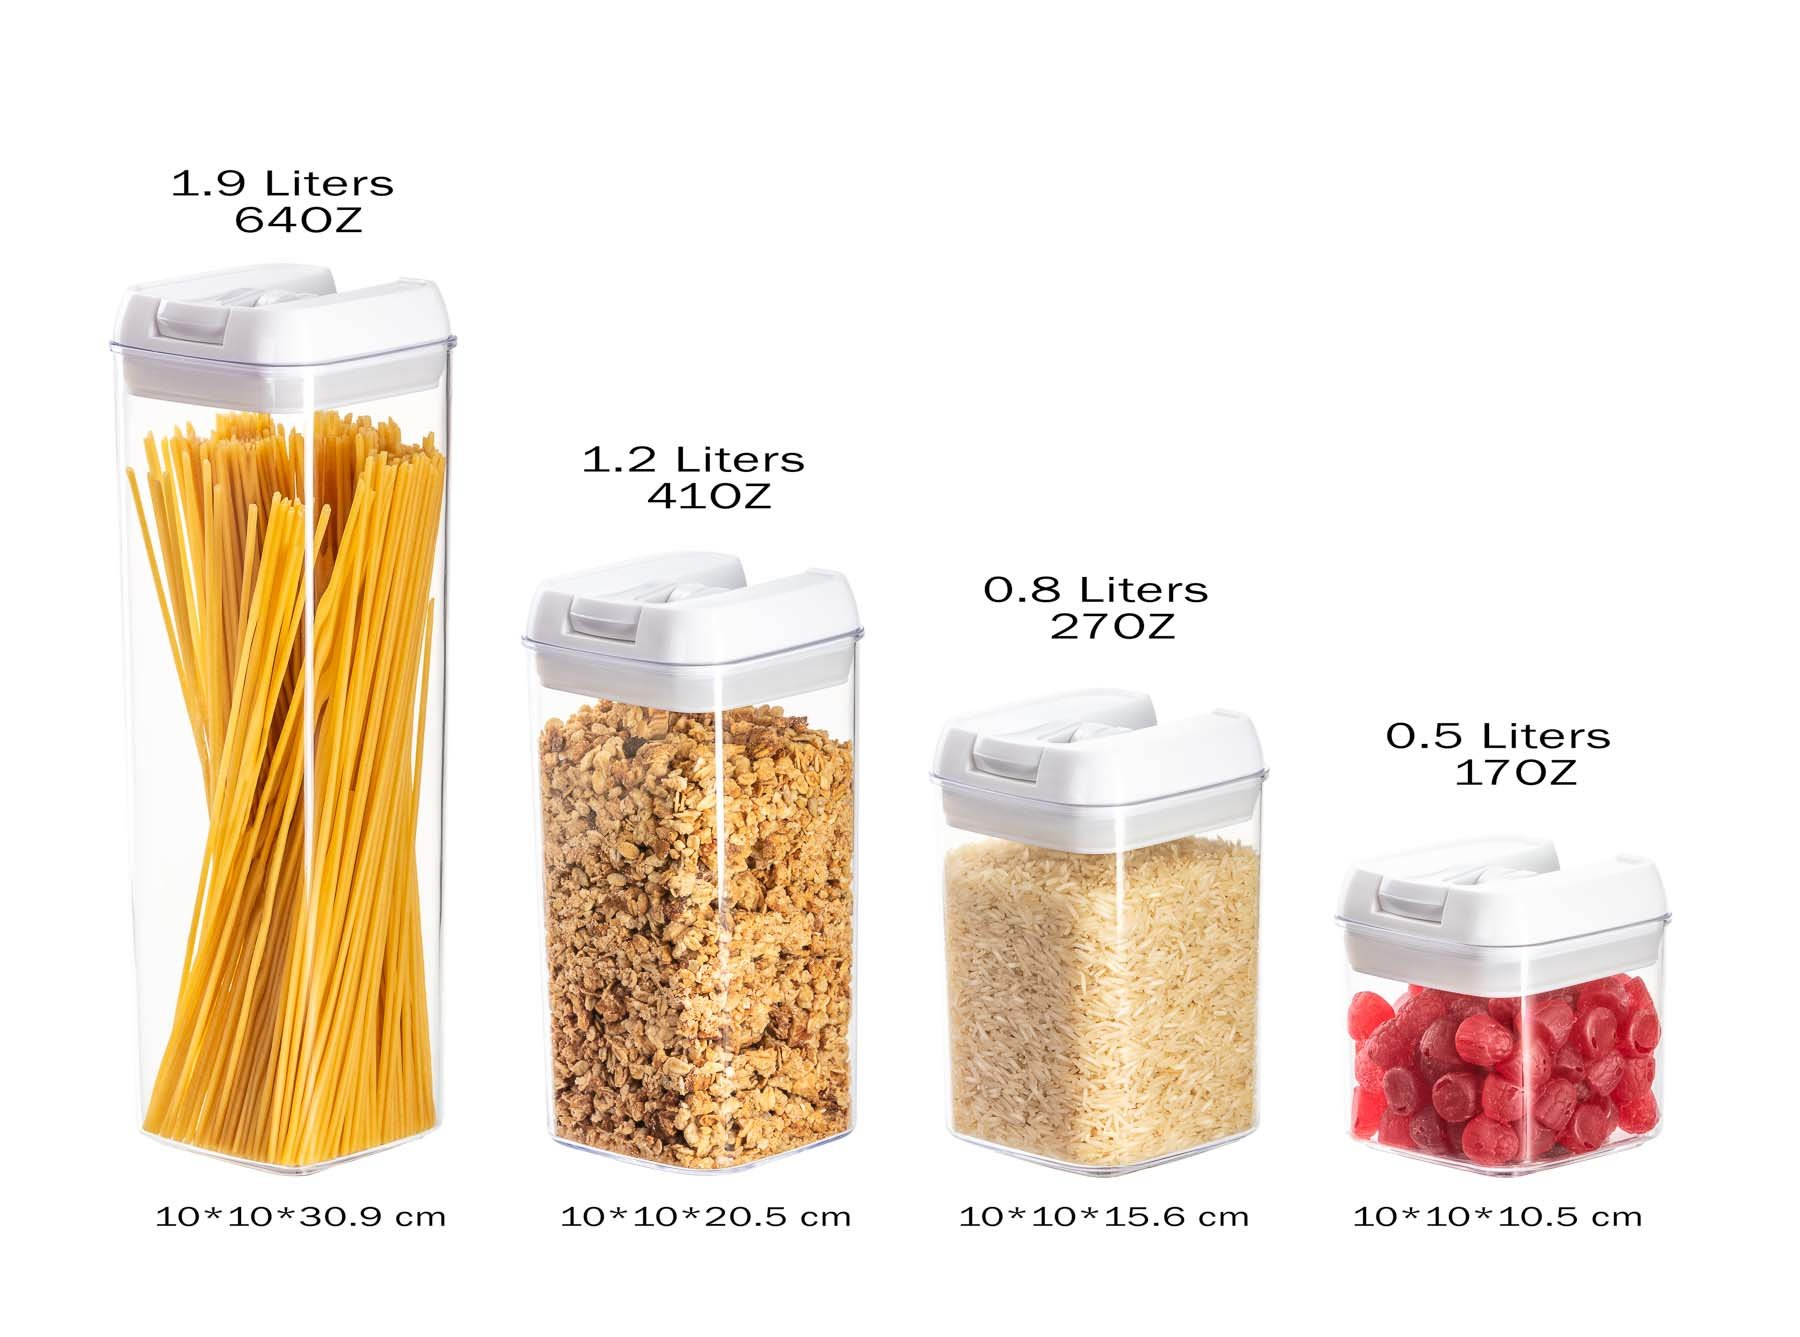 Amazon product photography sample of main image showing multiple products - Containers with size text